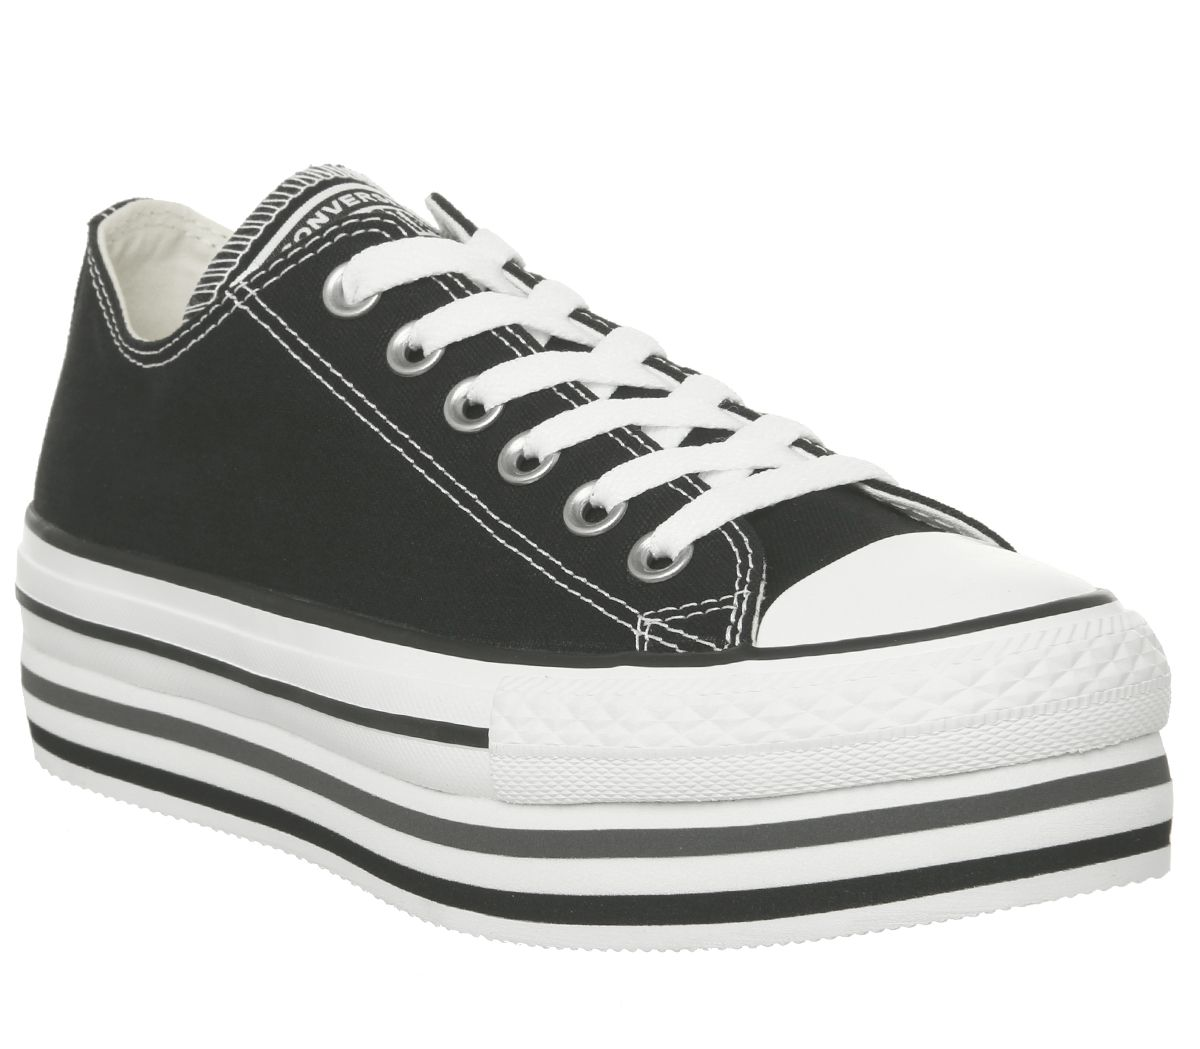 576a60604b3c Converse Chuck Taylor Platform Layer Ox Trainers Black White - Hers ...